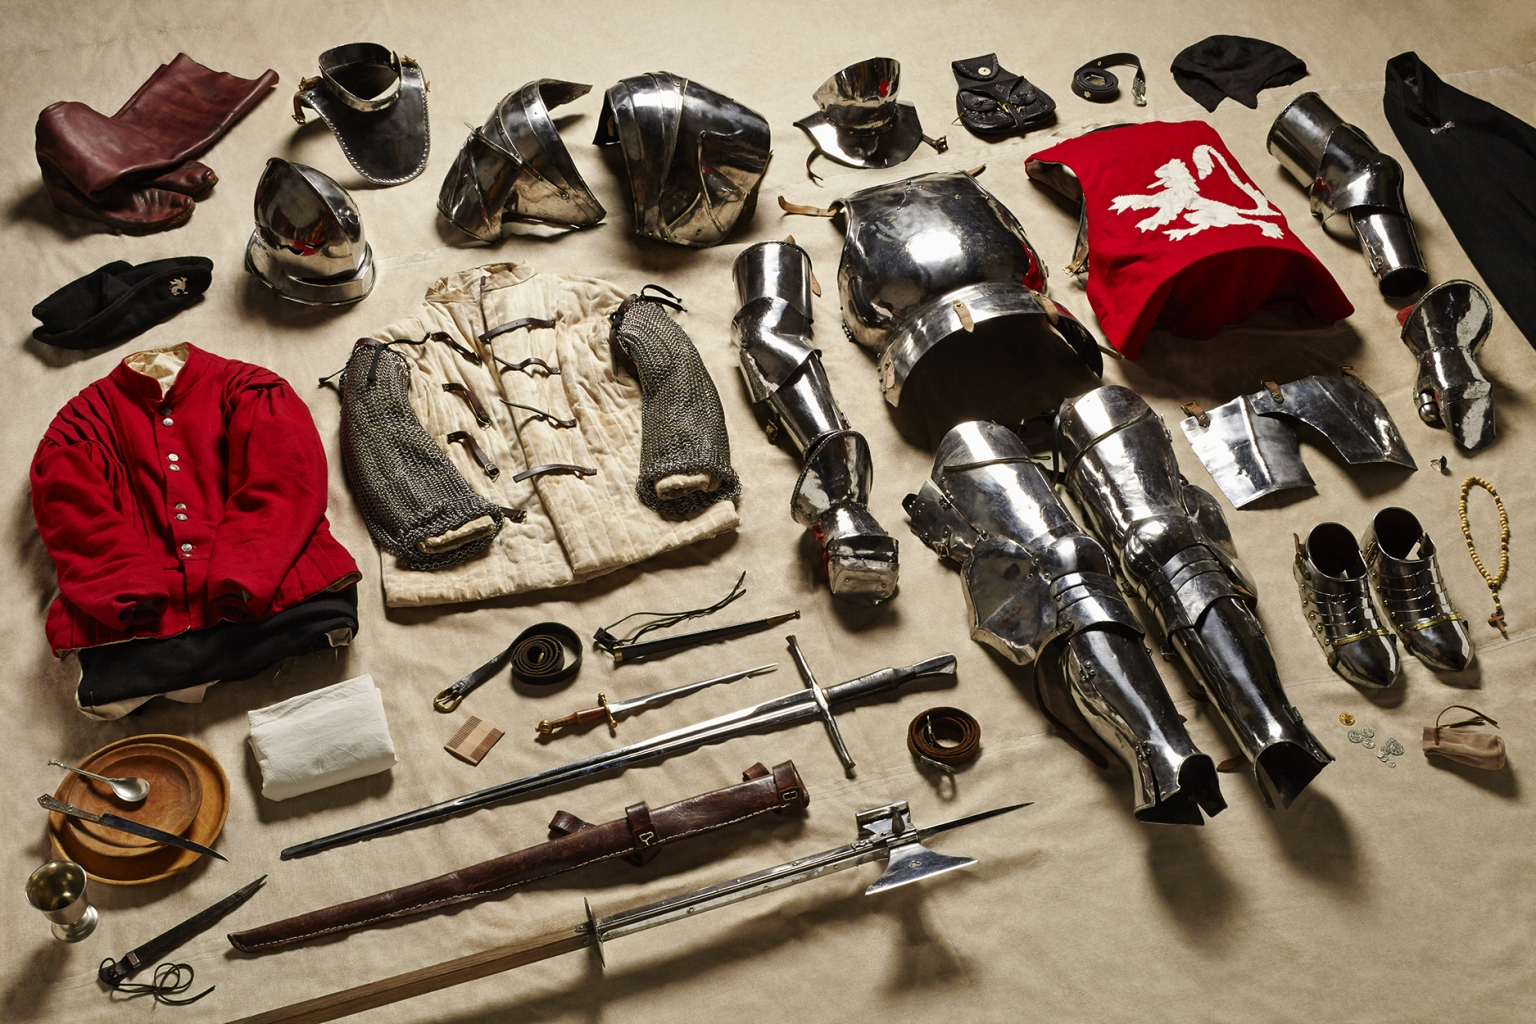 Yorkist Man at Arms, Battle of Bosworth, 1485 - Soldiers' Inventories - Photo by Thom Atkinson